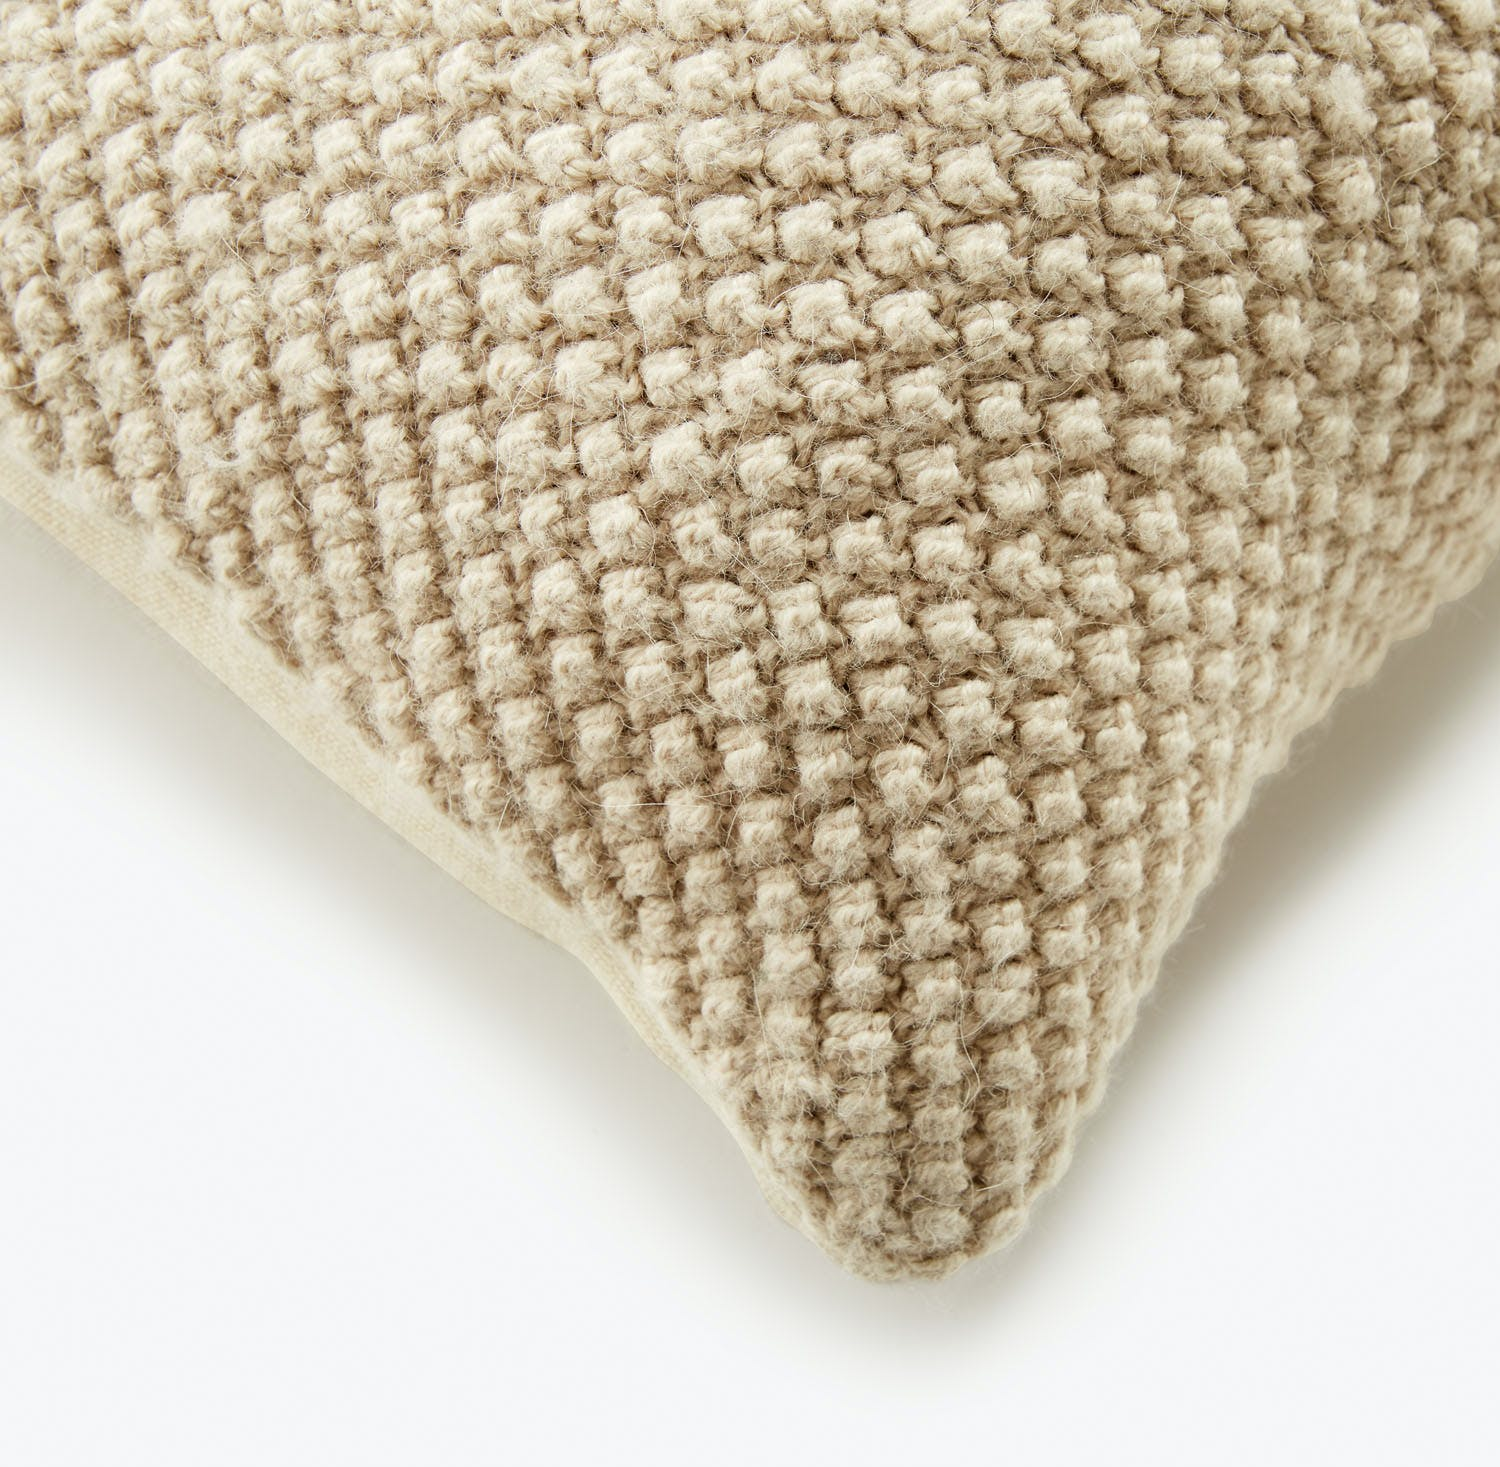 Aiayu Heather Pillow Off-White